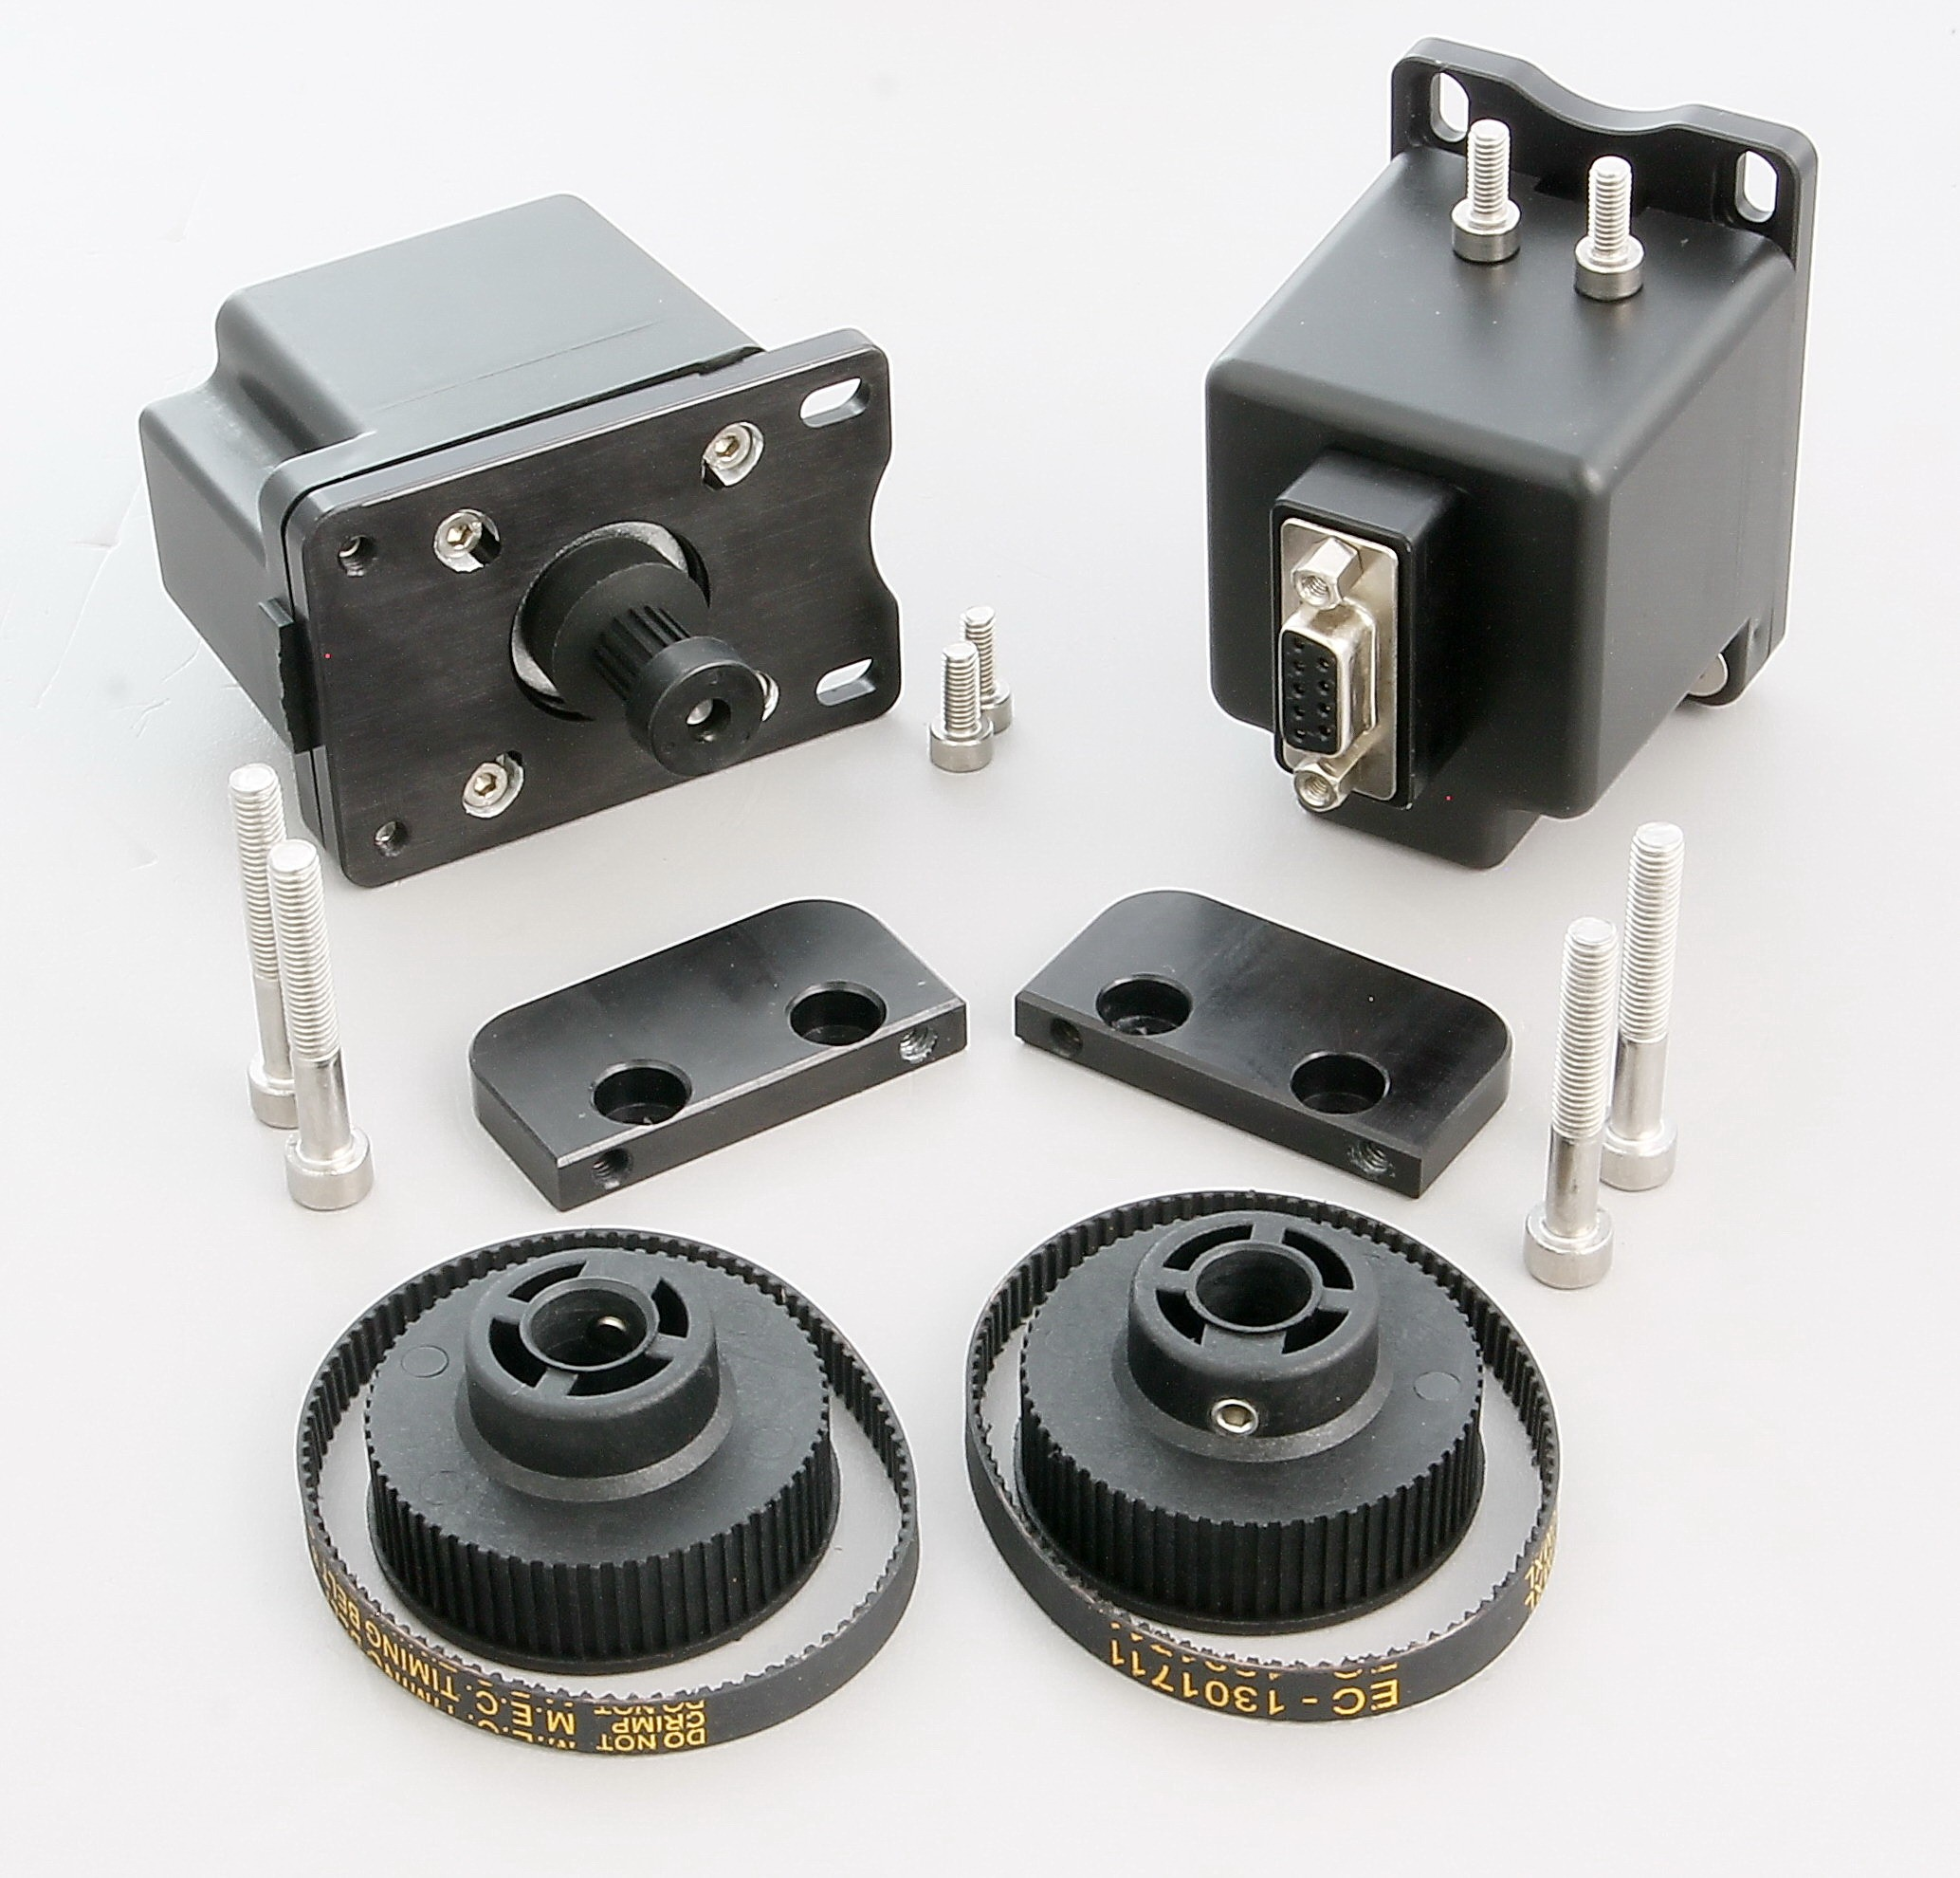 STARGO & MINIGO MOTORS KIT AVALON INSTRUMENTS